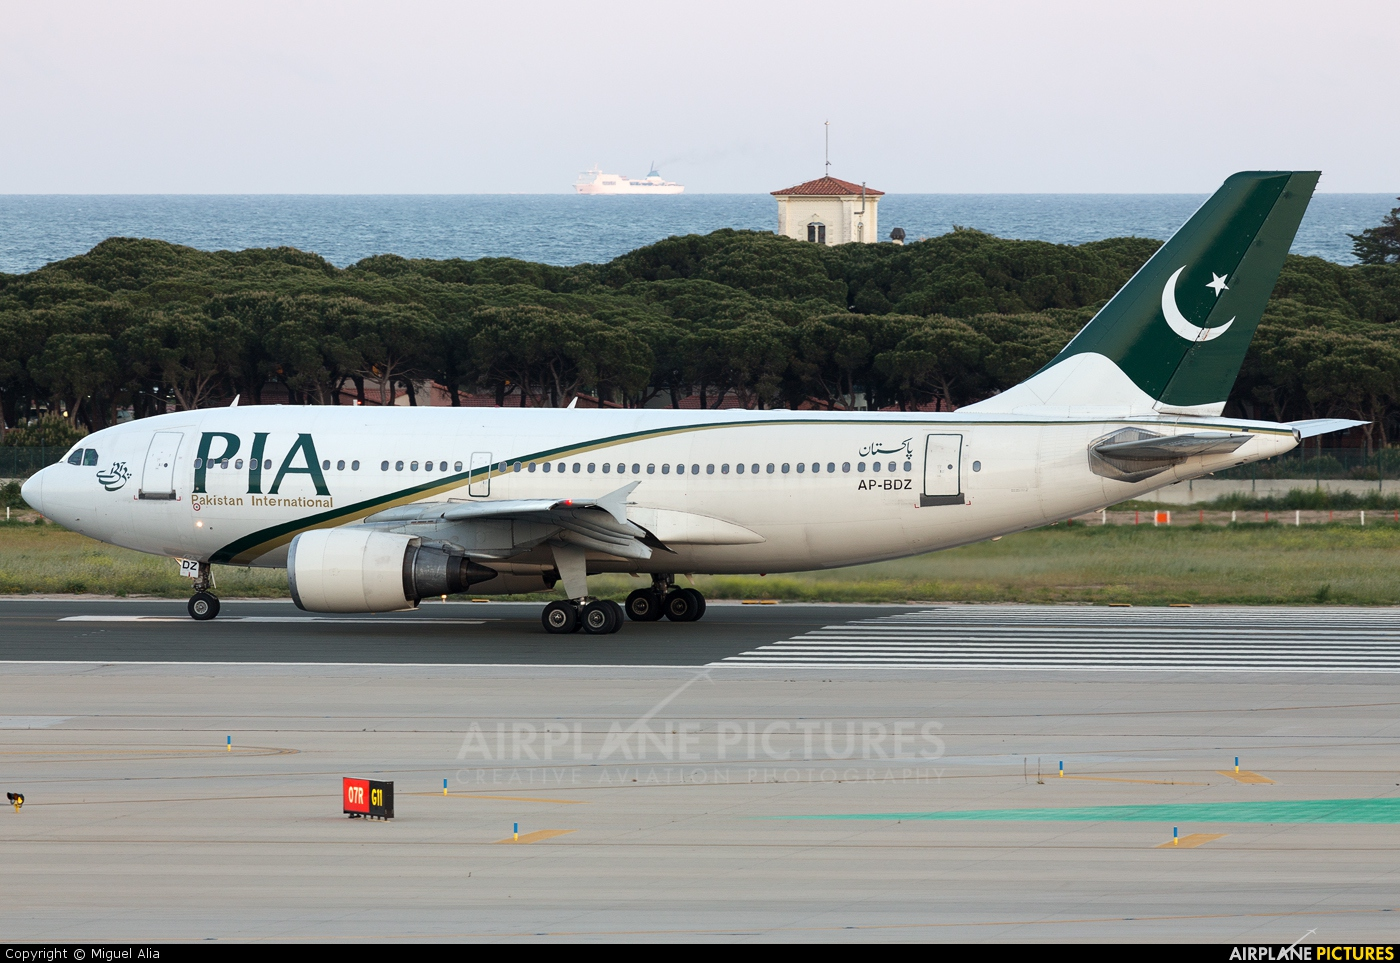 PIA - Pakistan International Airlines AP-BDZ aircraft at Barcelona - El Prat